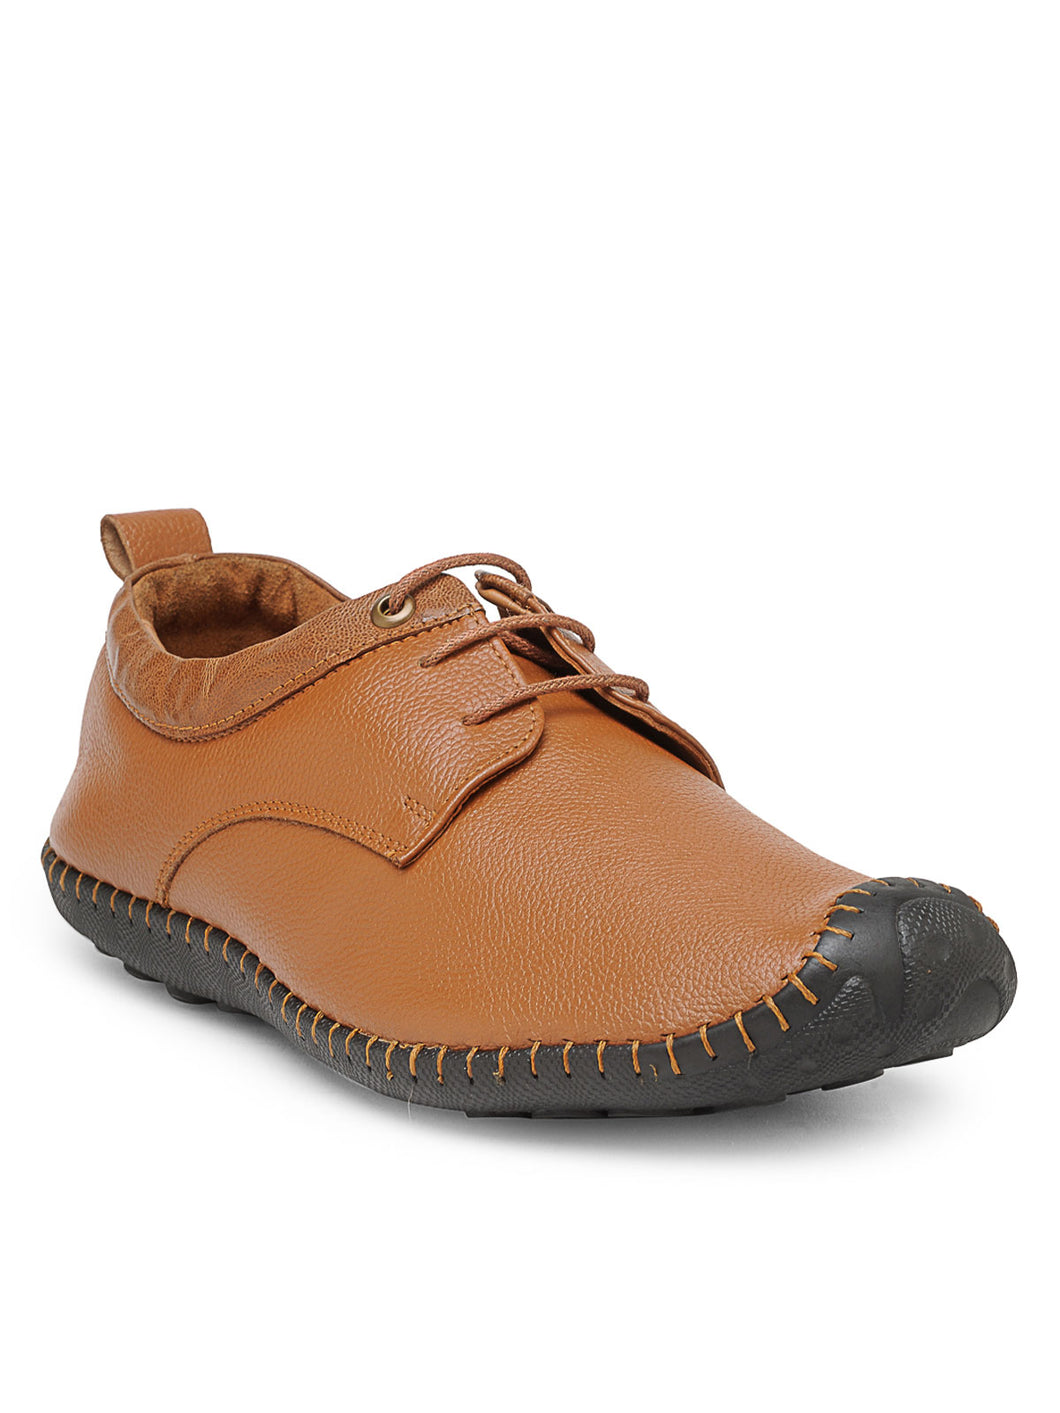 Teakwood Men's Real Leather Shoes